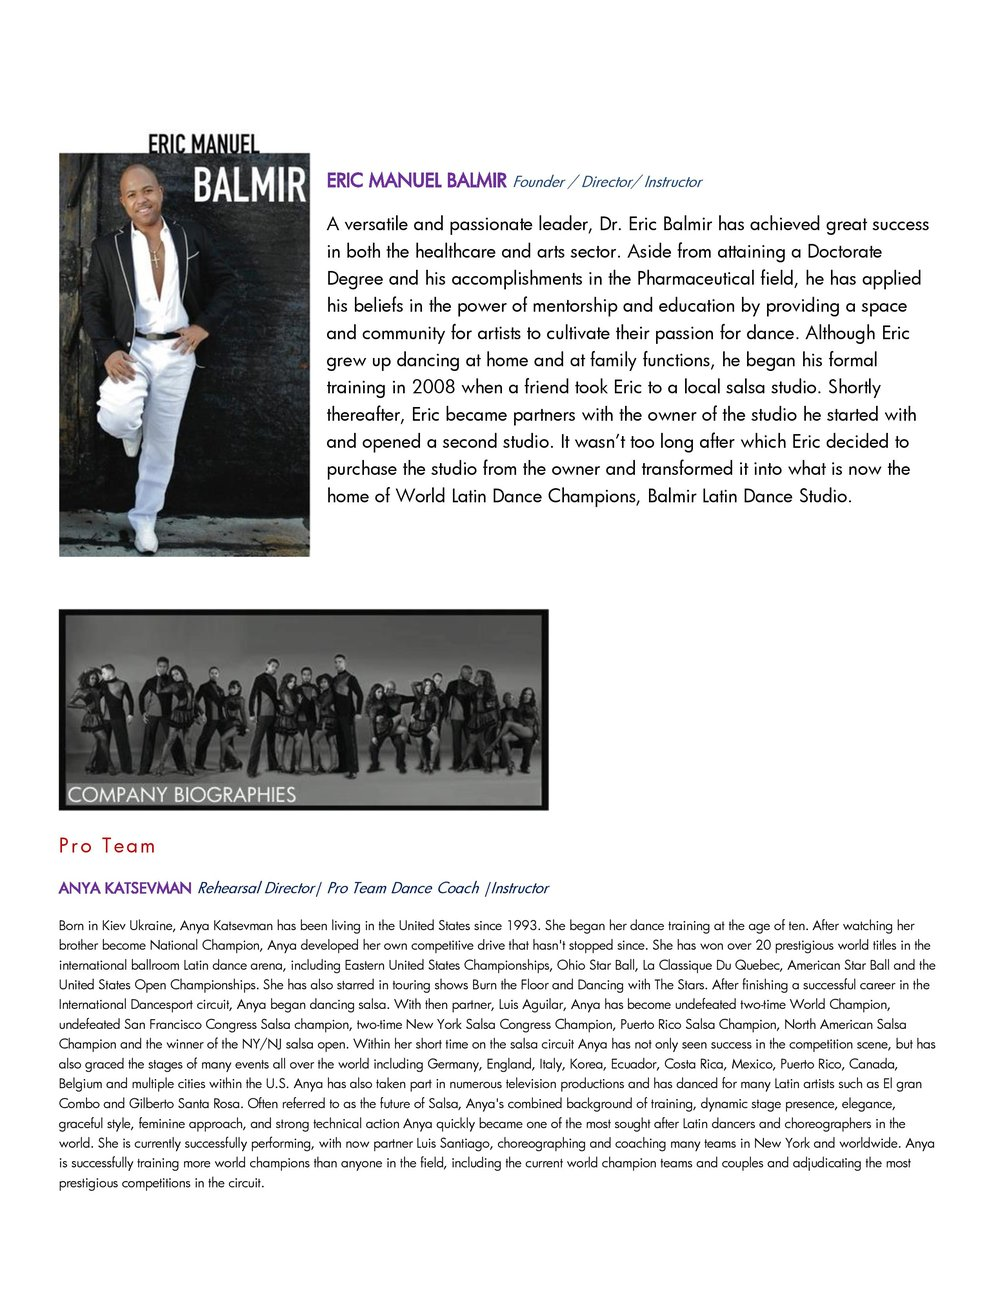 BLDC Press Kit 2017-2018 With Watermark Updates June-page-002.jpg